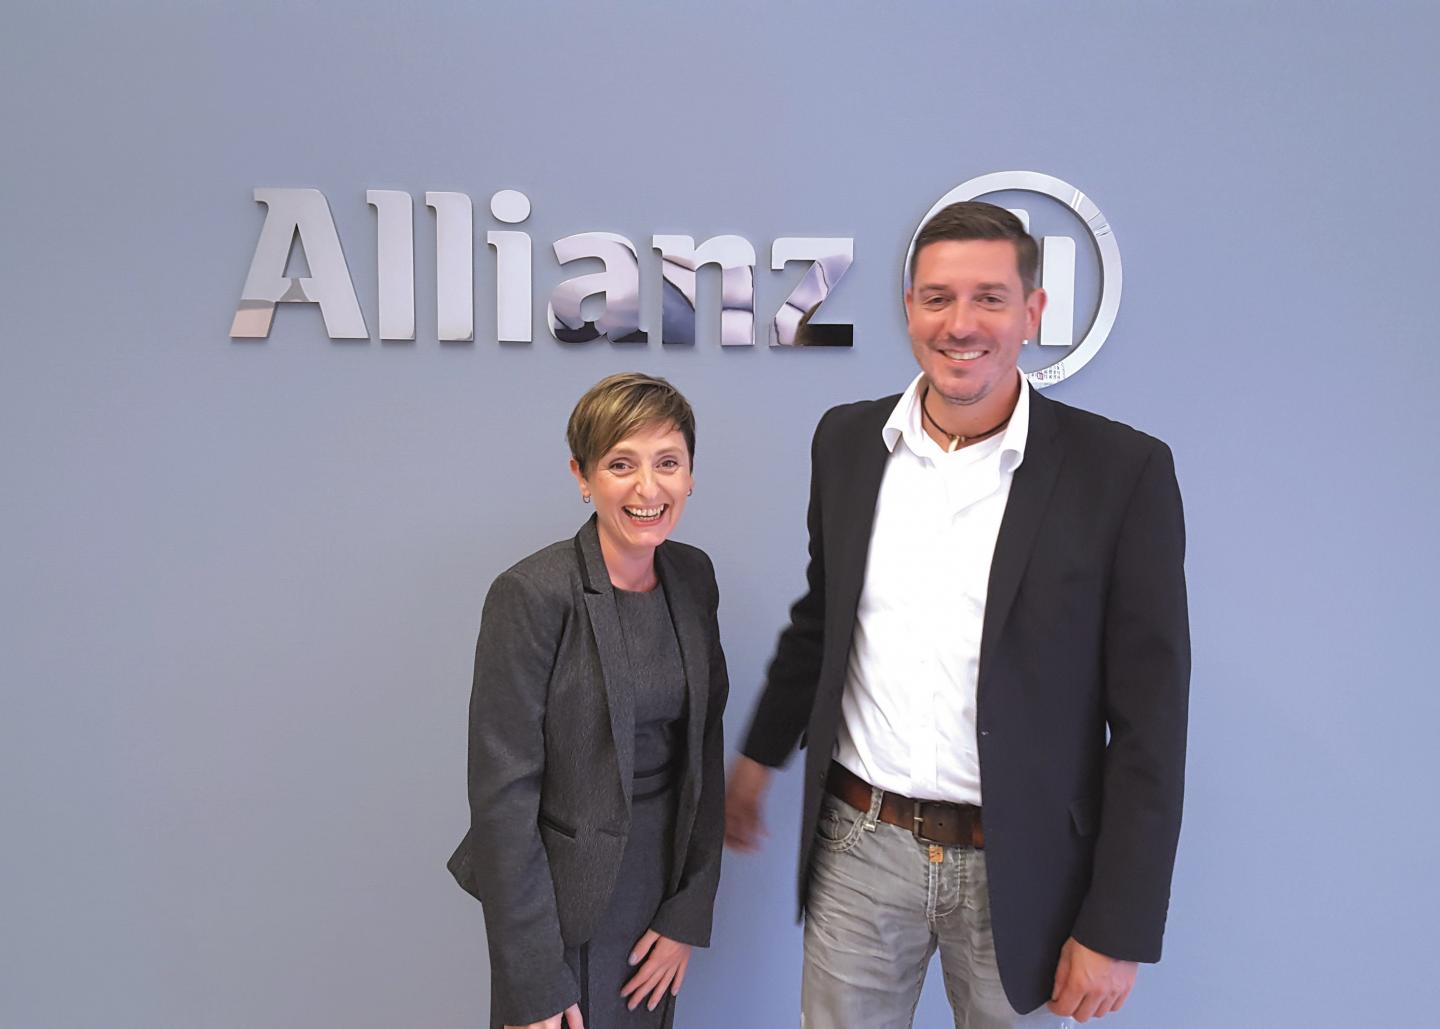 Allianz Team Normann Ruß in Bad Doberan